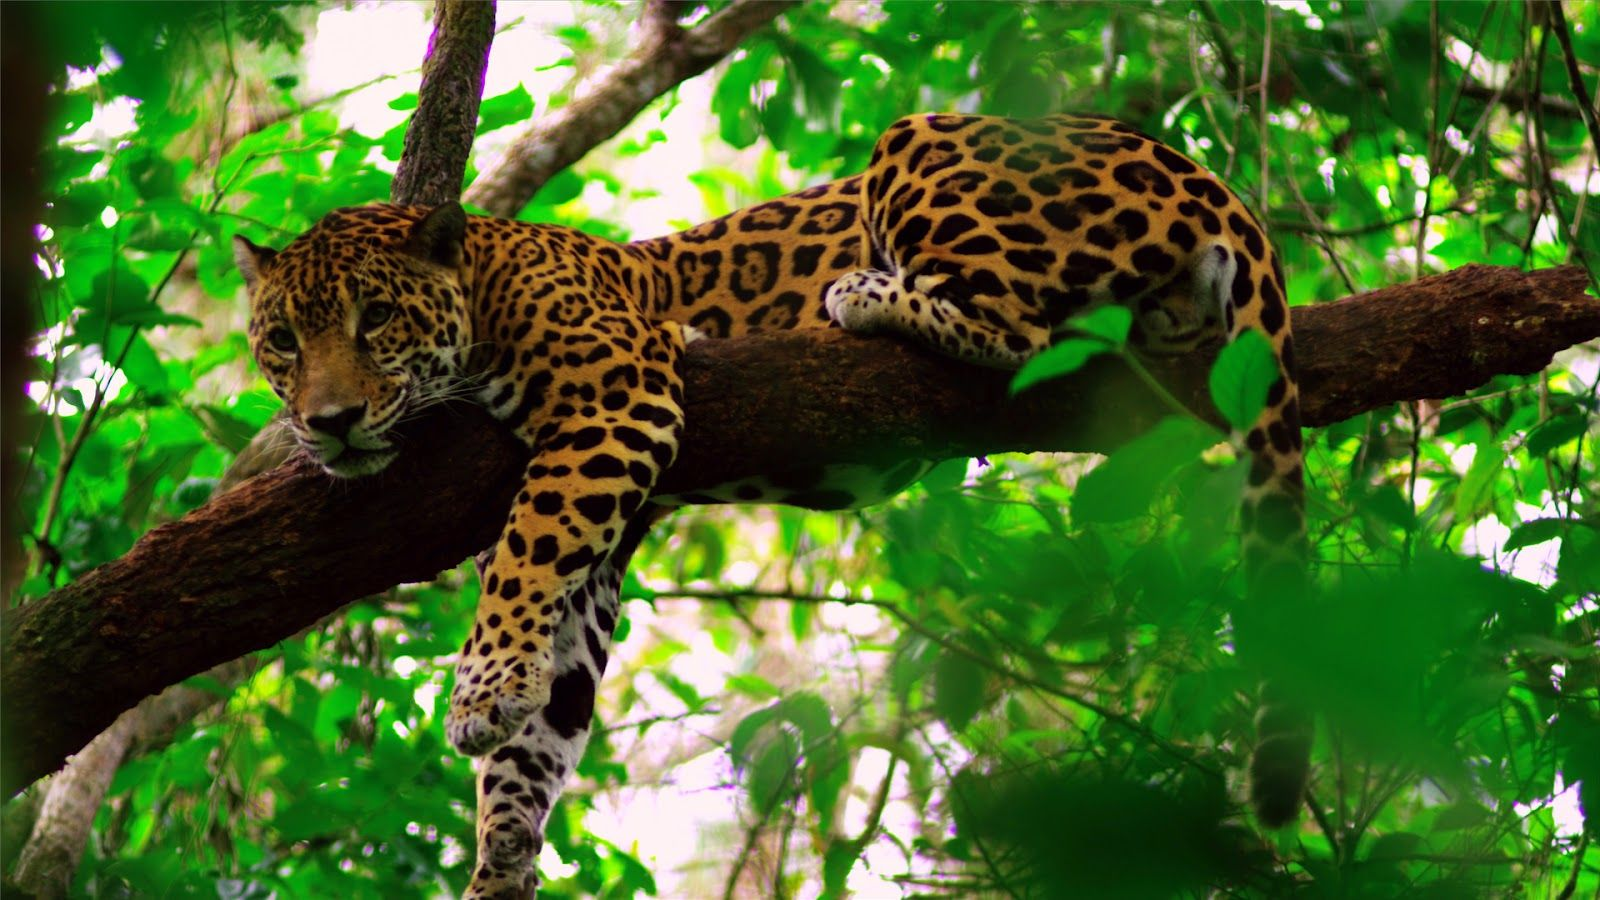 Rainforest Jaguar Www Imgkid Com The Image Kid Has It